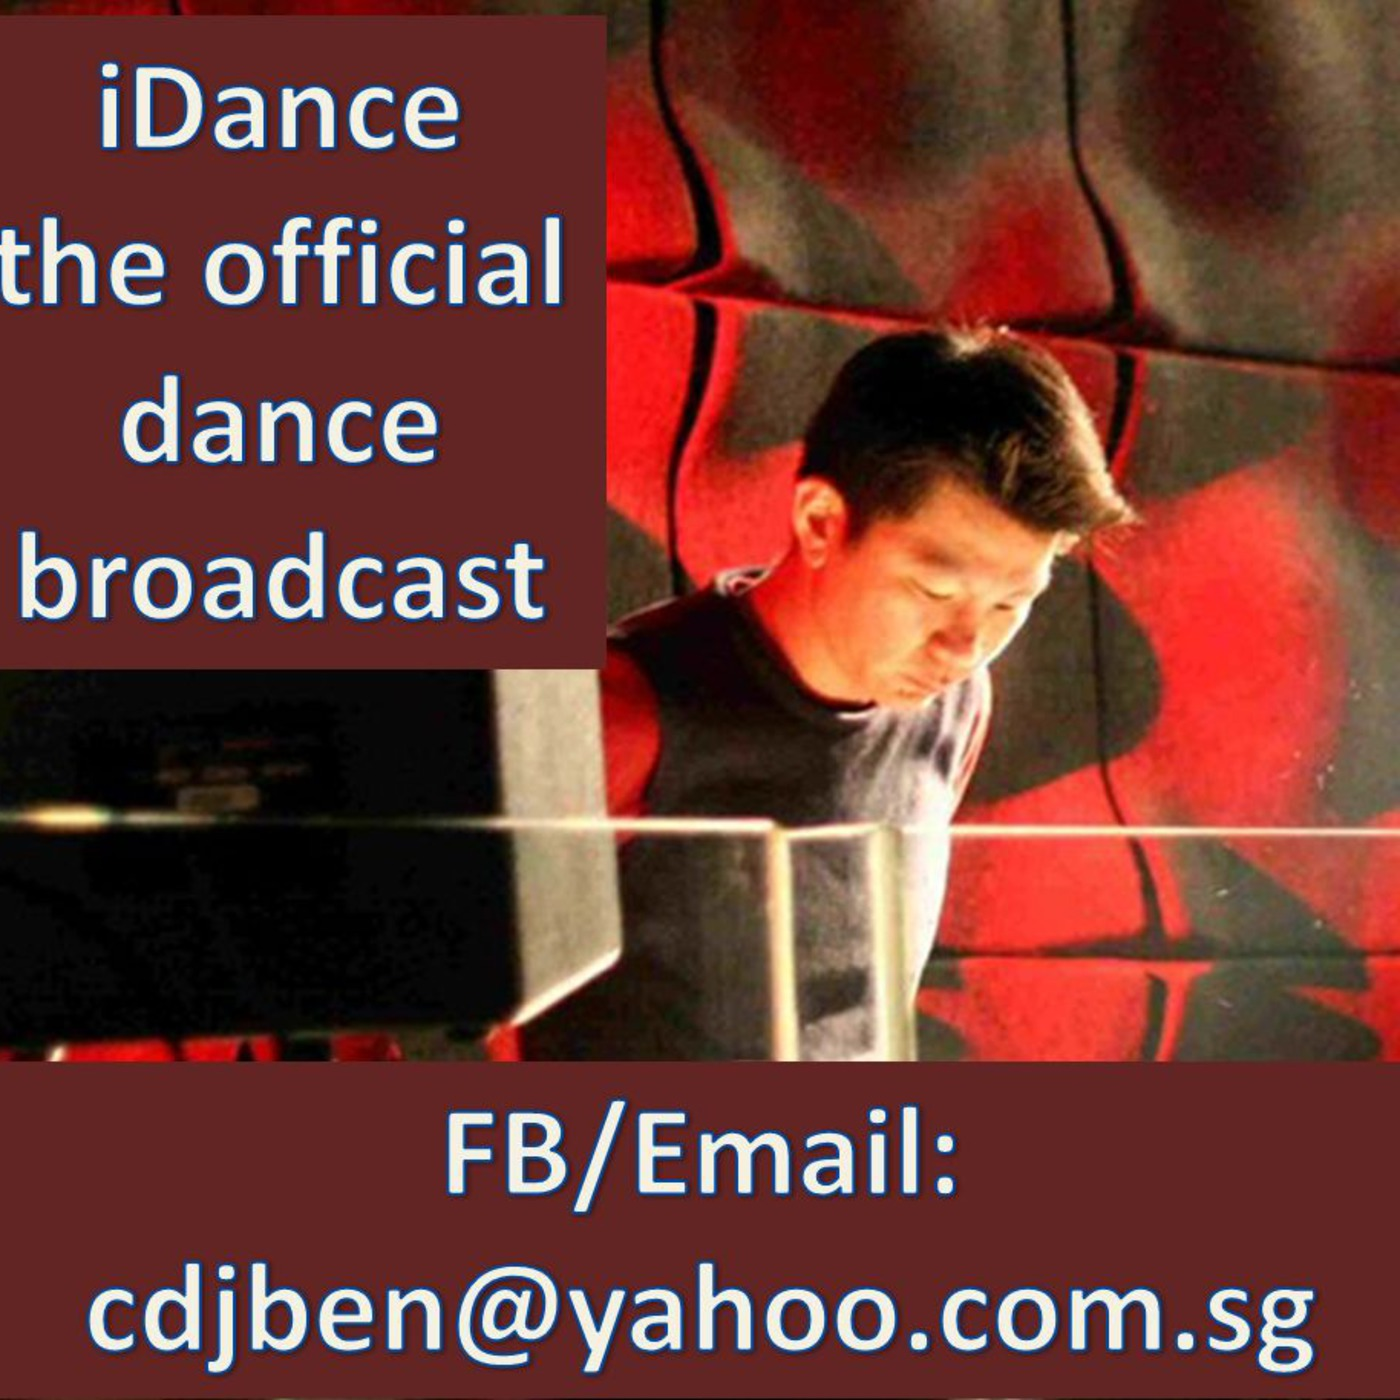 iDance the official dance broadcast